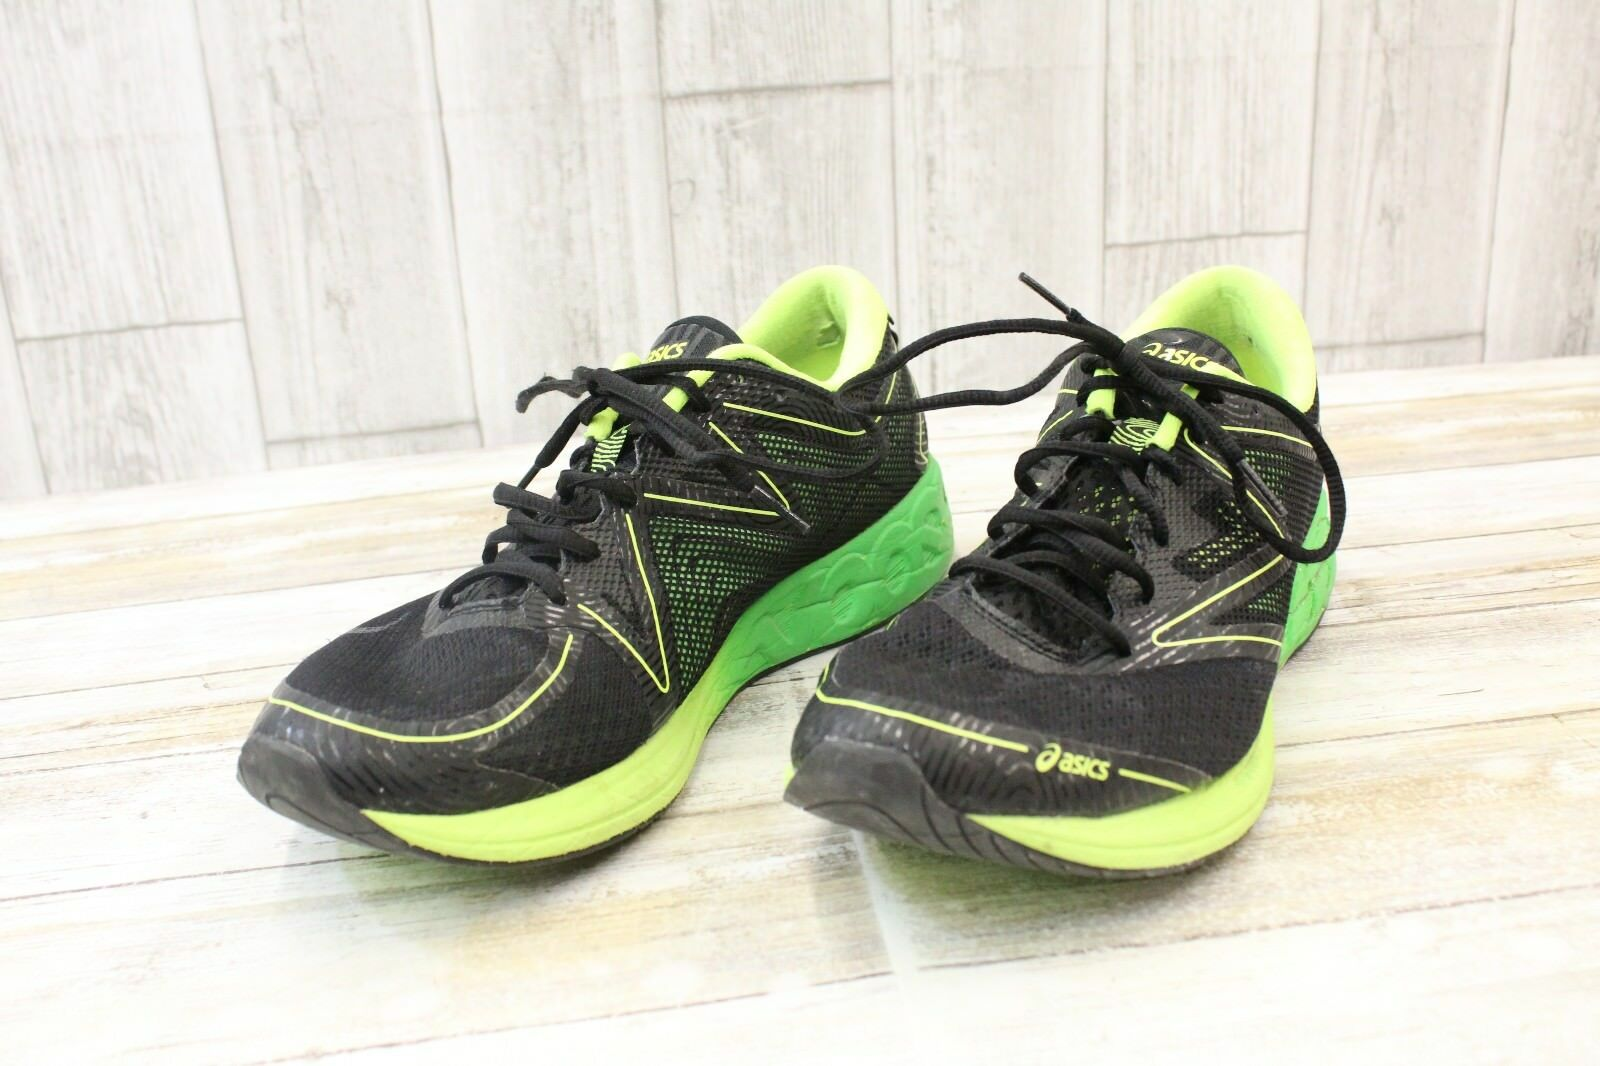 096f9d214a6f4 Asics Noosa FF Athletic shoes Men's Size 11.5, Black Green Gecko ...